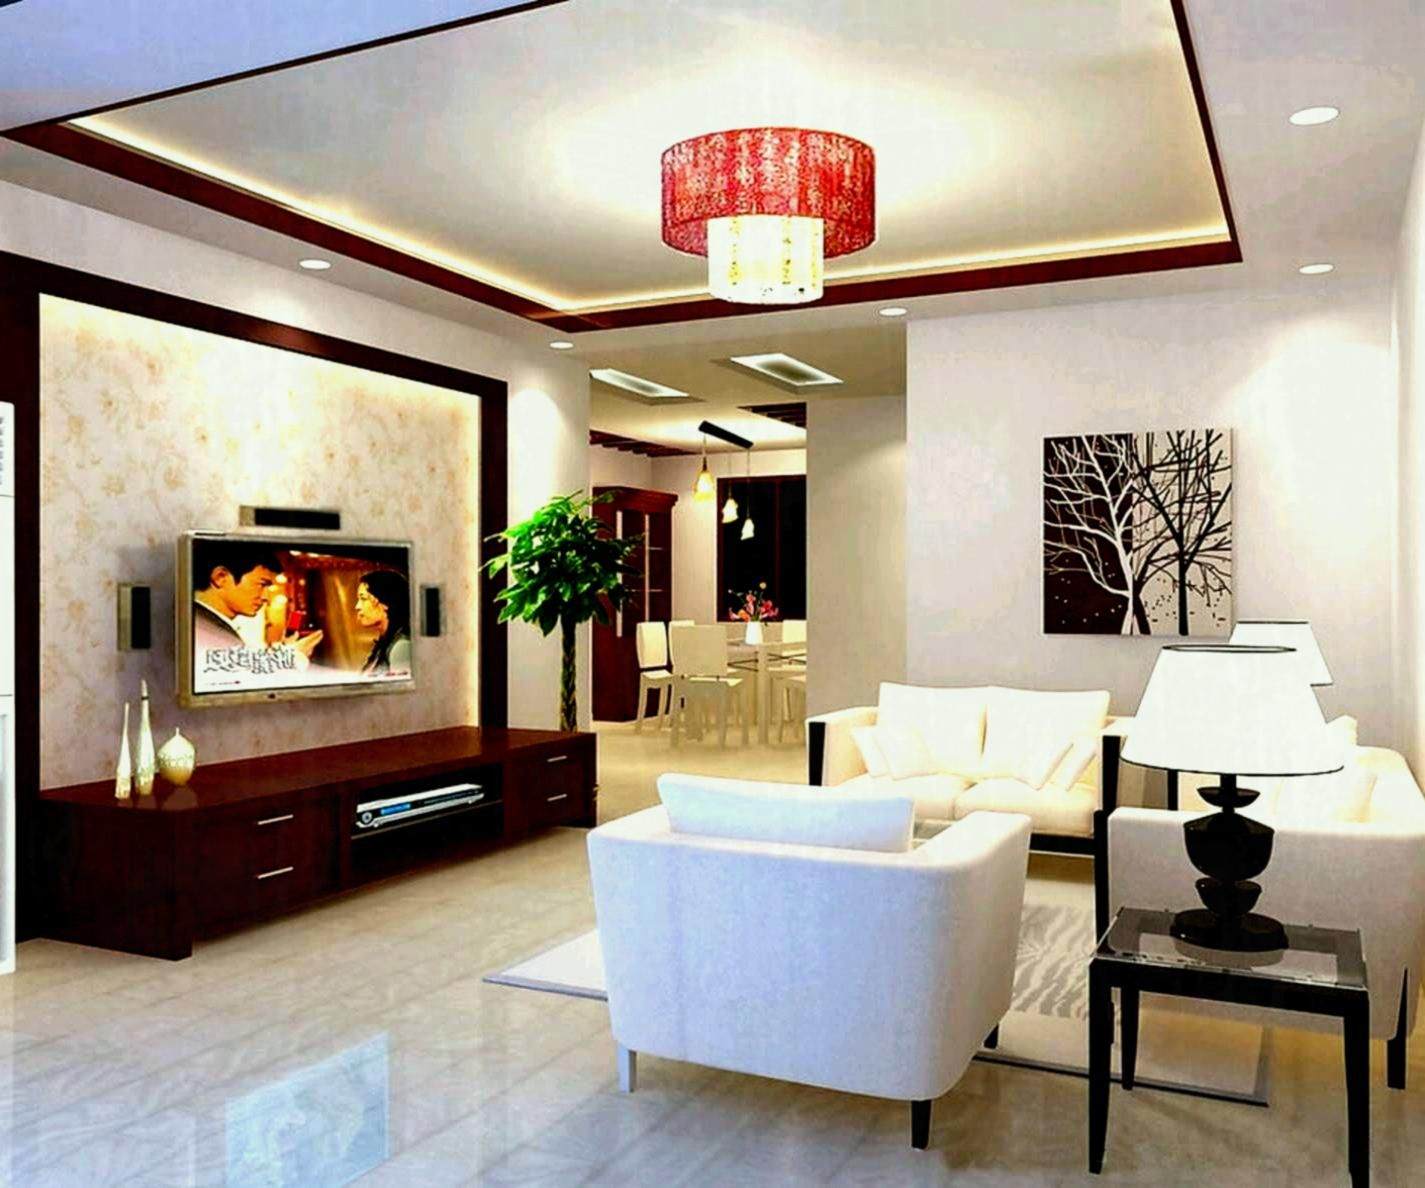 Pretty Home Interior Design For Middle Class Family With Pink